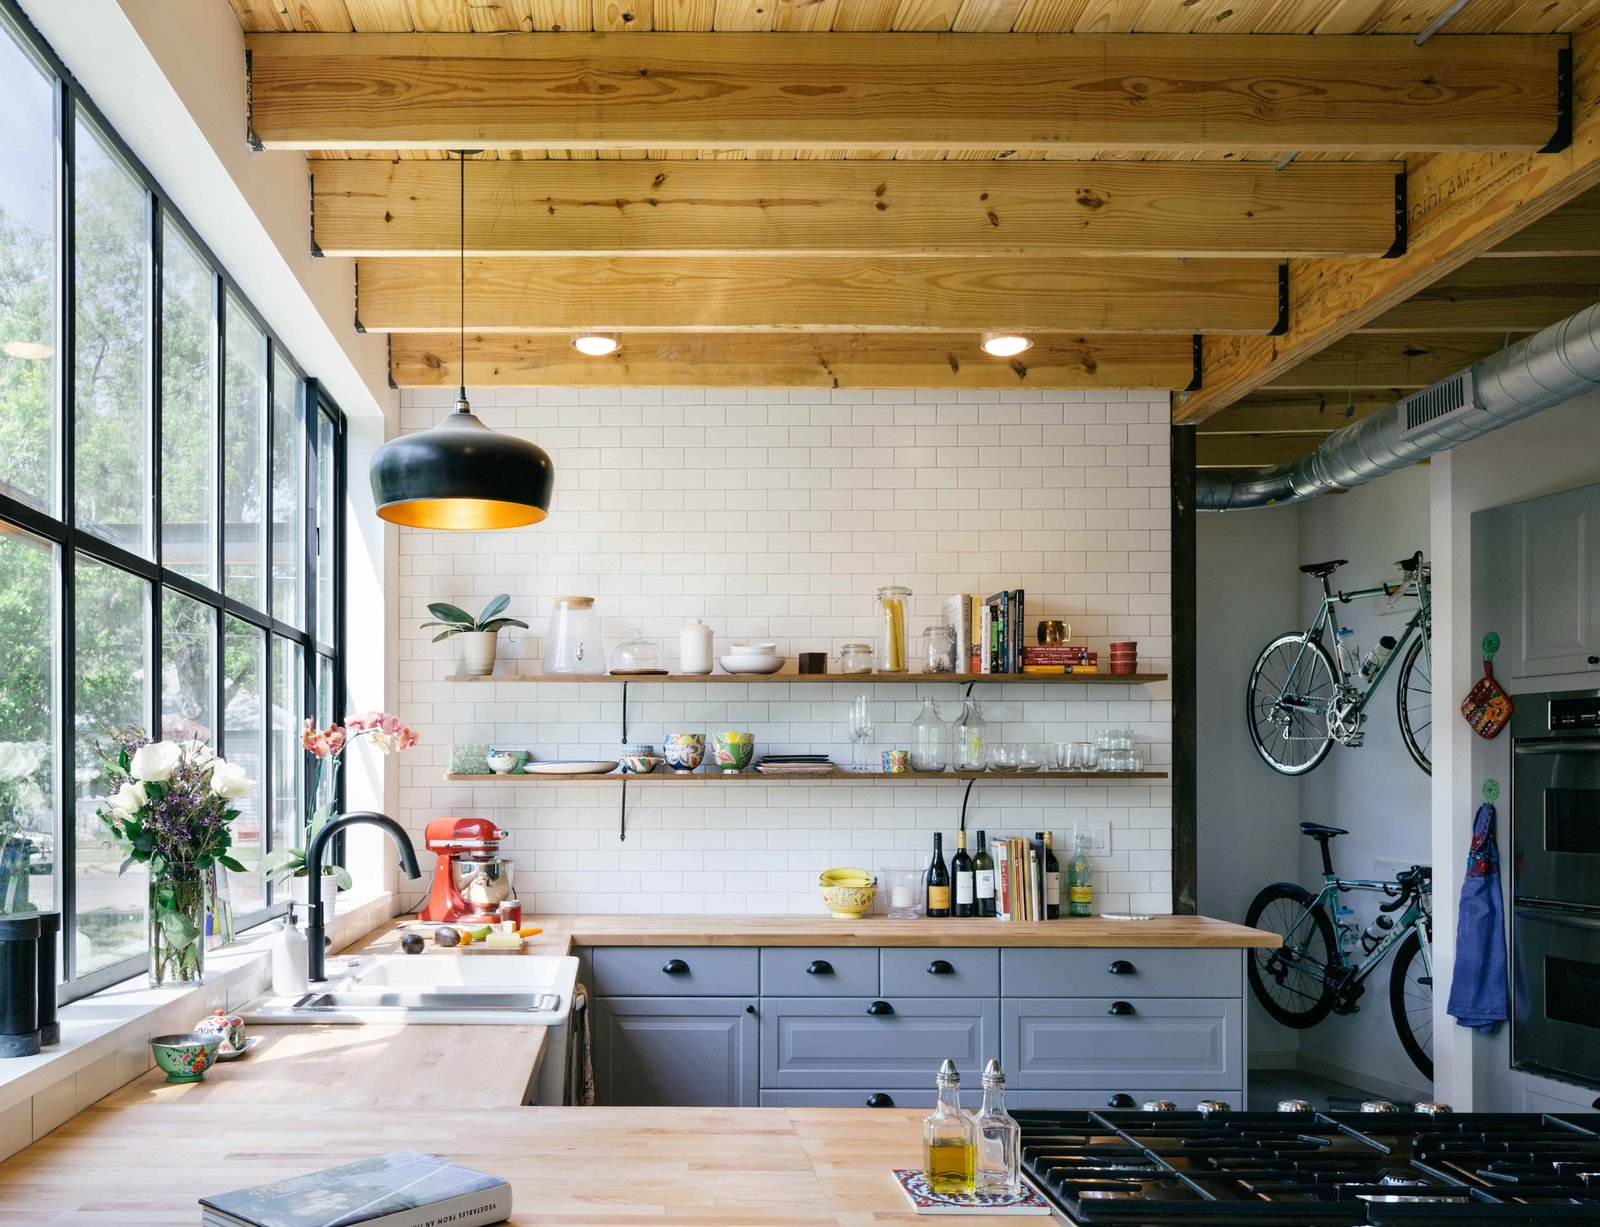 #kitchens #modern #midcentury #inside #interior #indoors #structure #form #appliances #living #space #color #windows #lighting #Austin  60+ Modern Lighting Solutions by Dwell from kitchen ideas